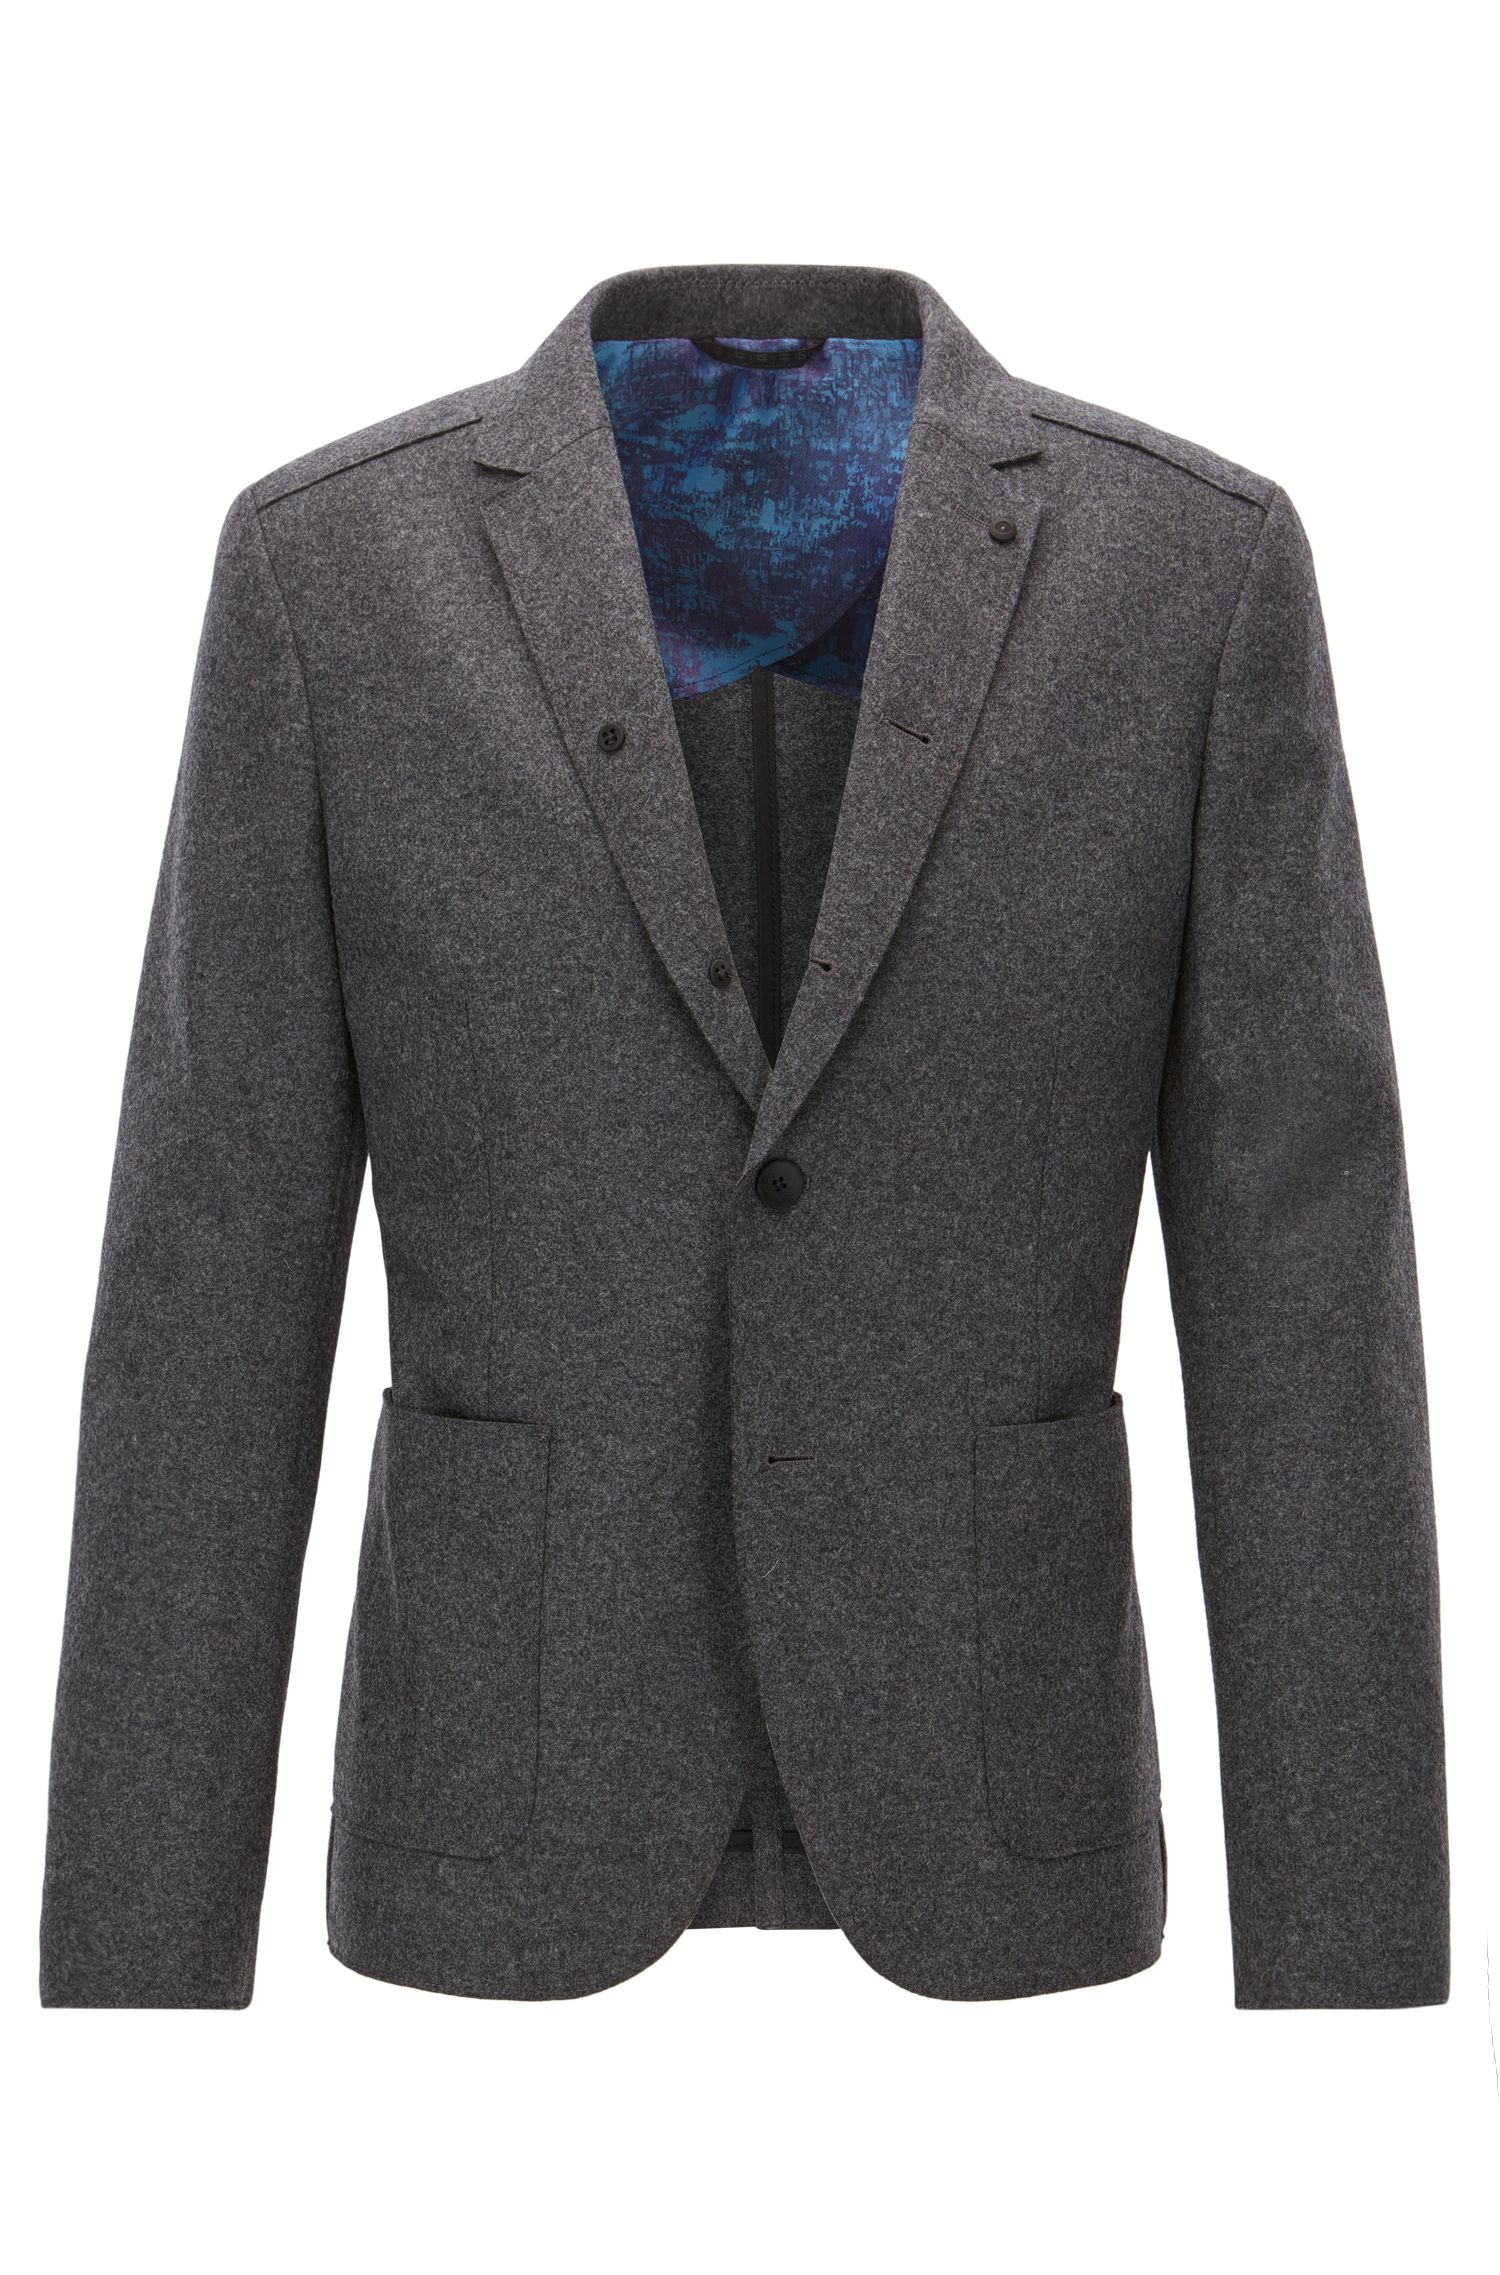 Veste Slim Fit en laine vierge, à bords bruts